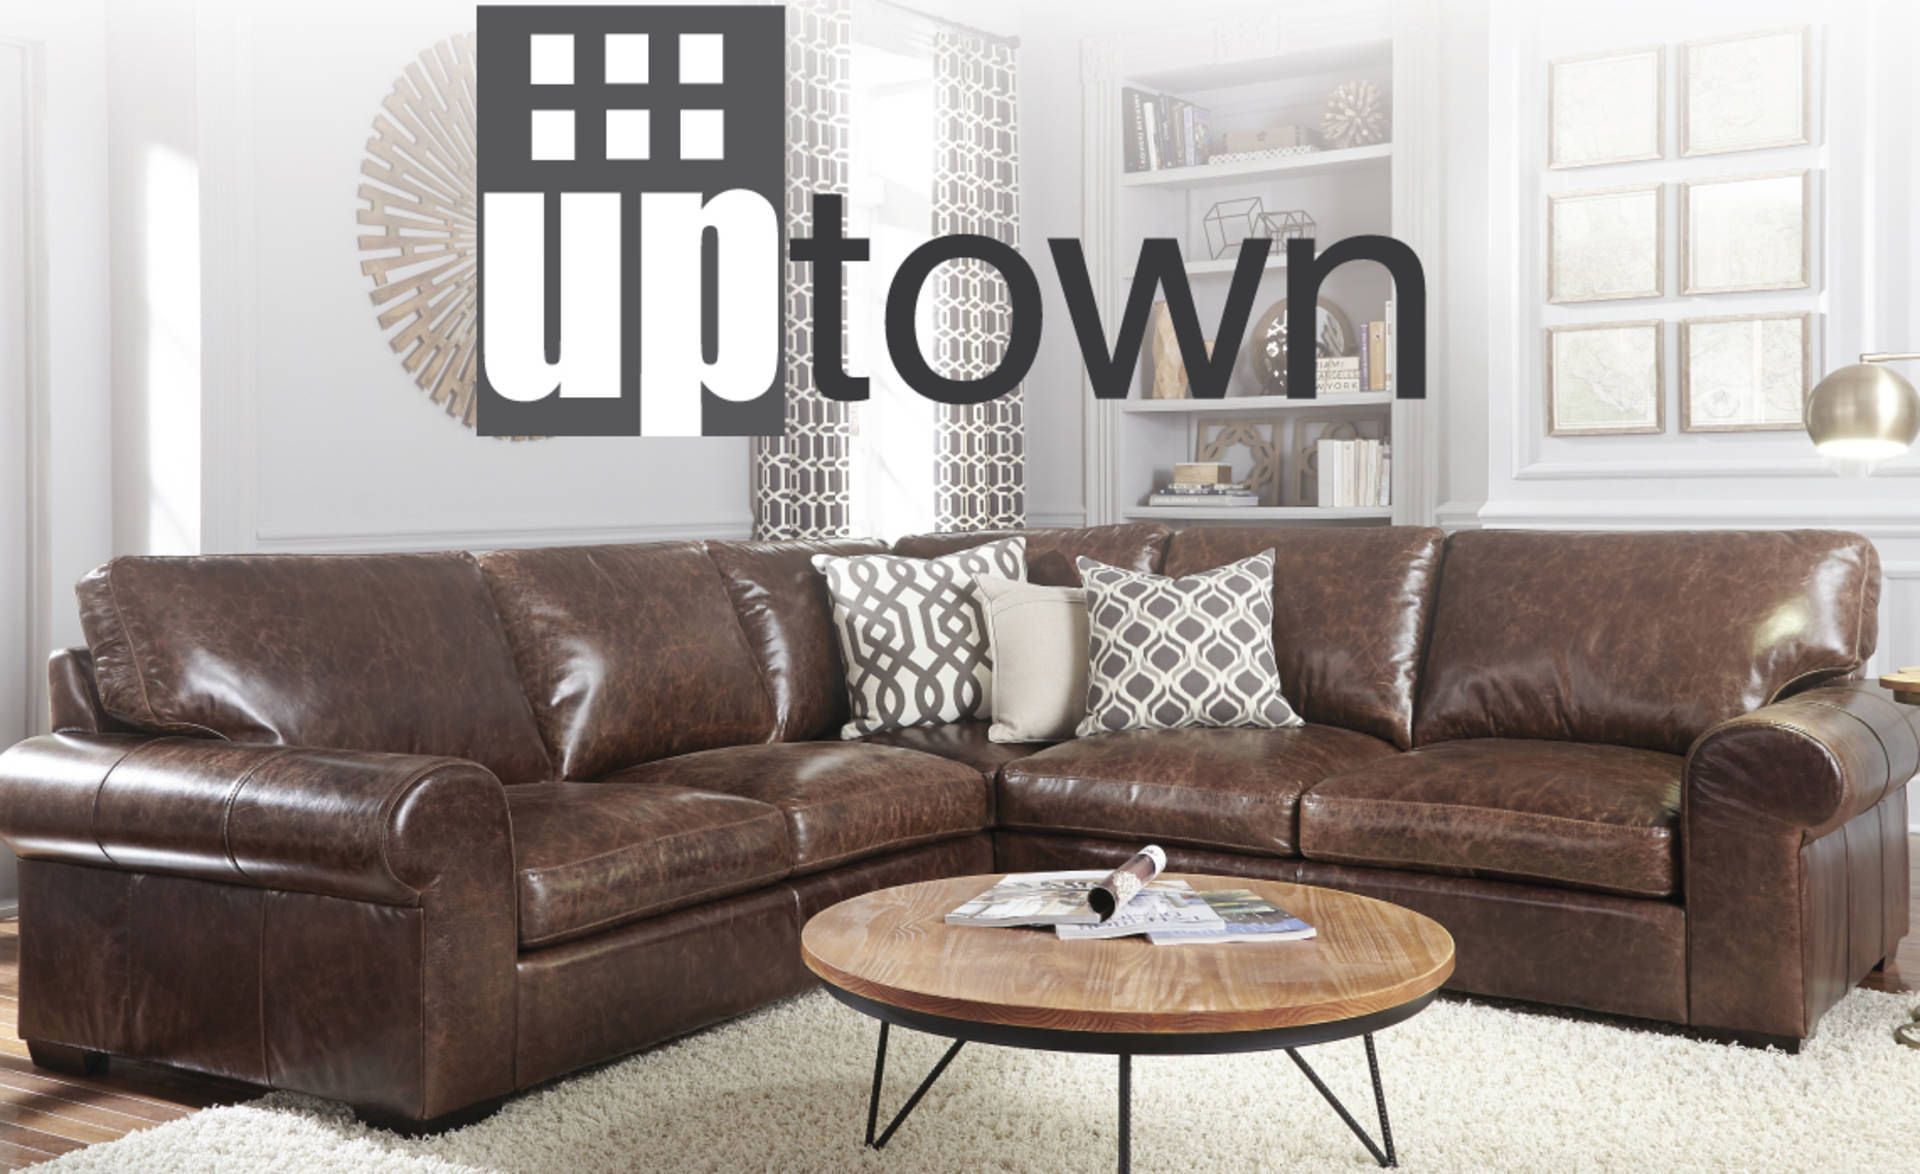 Hom Furniture Furniture Stores In Minneapolis Minnesota Midwest